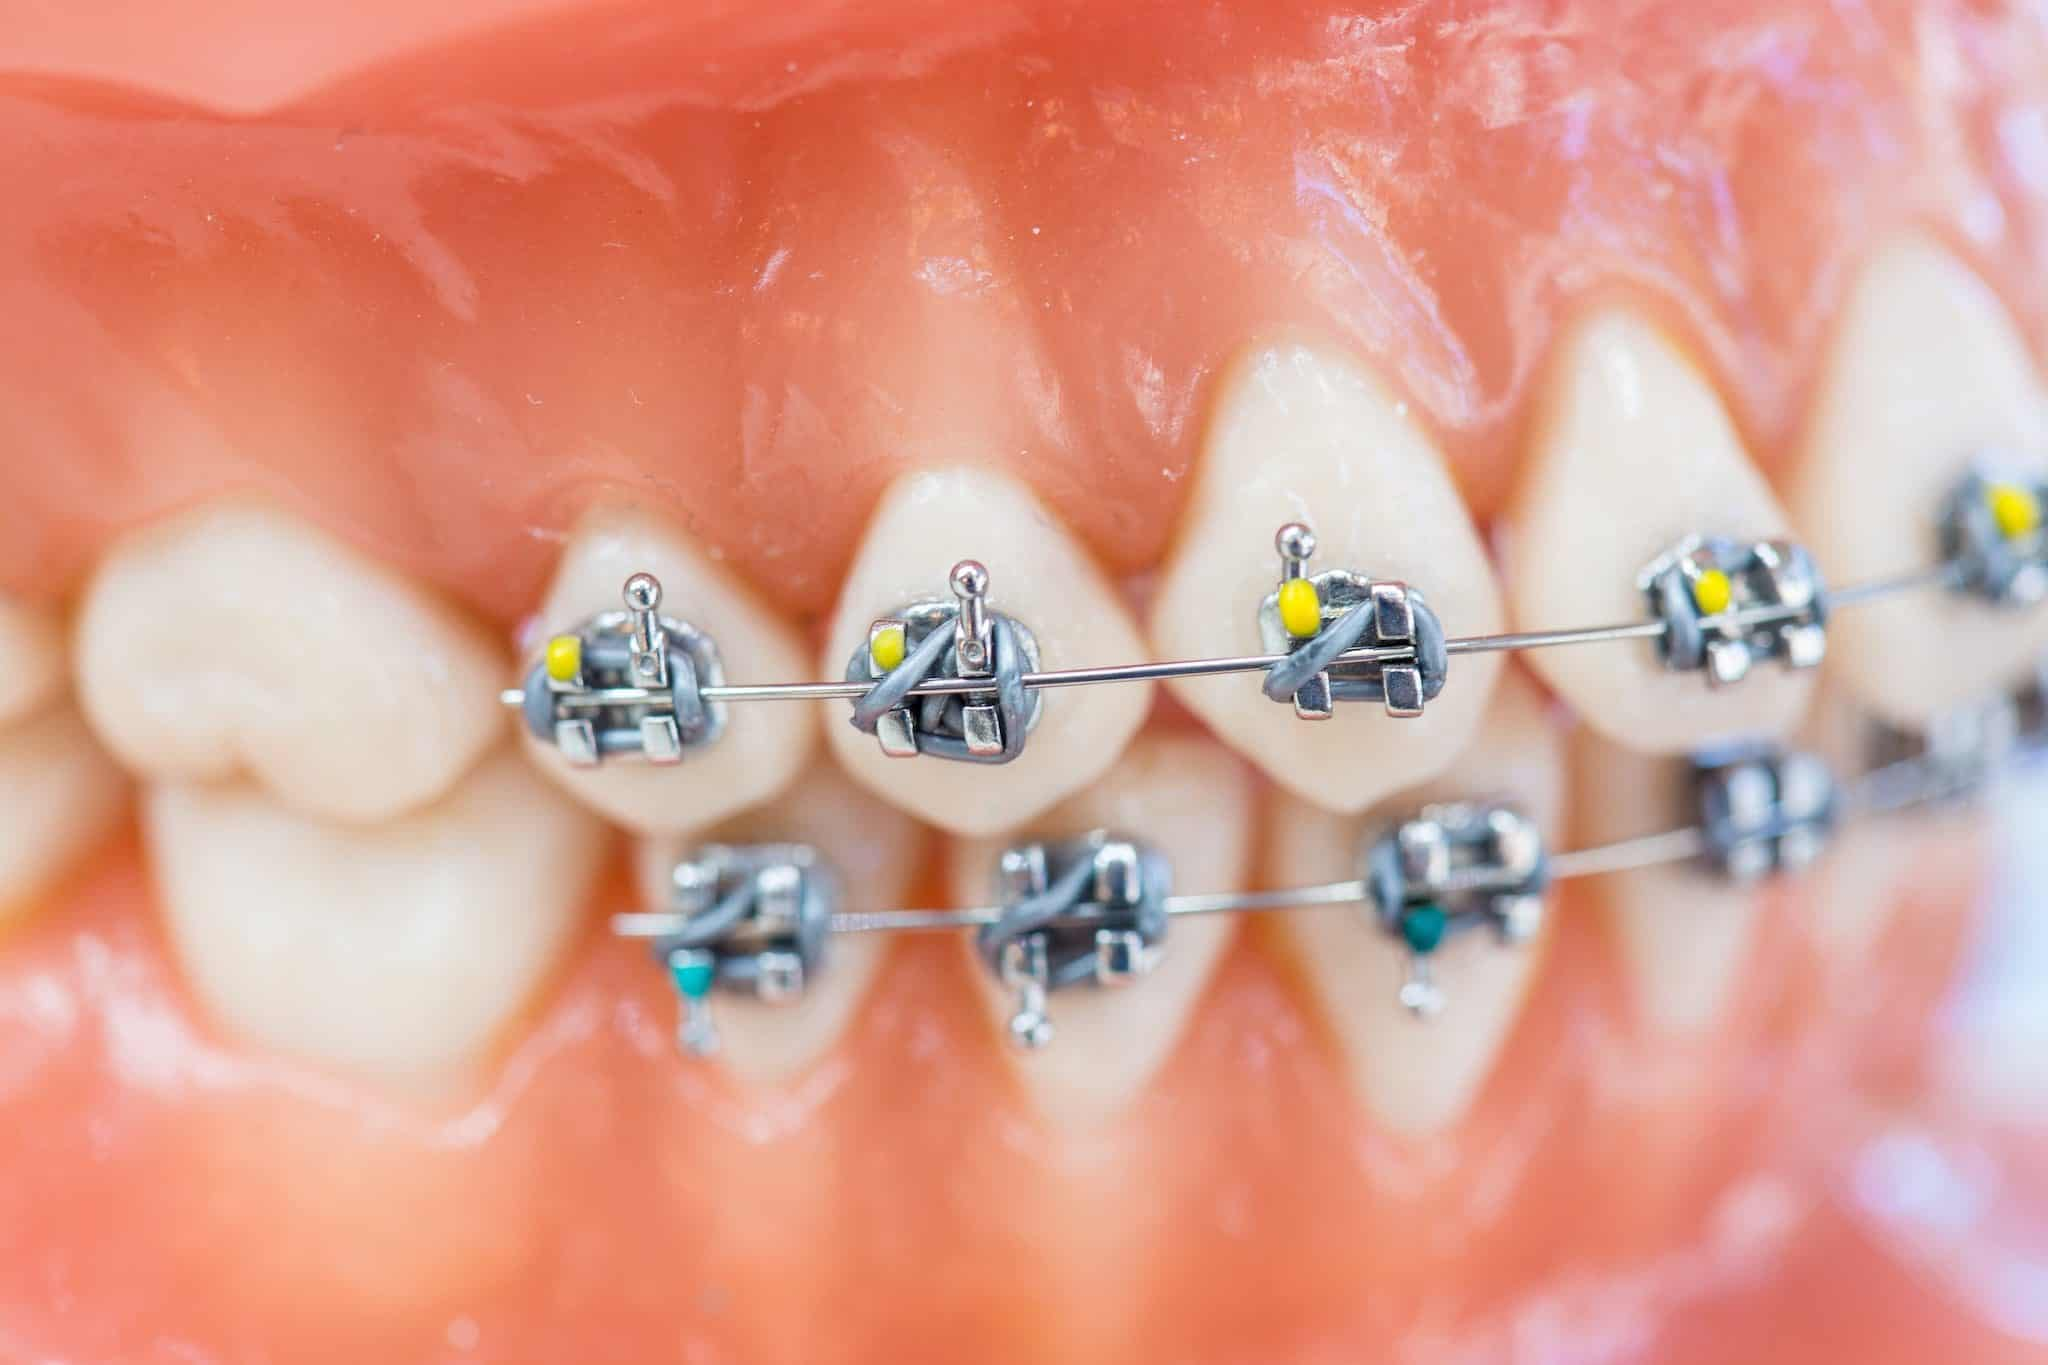 Ortho Essentials Appel Orthodontics 2 2048x1365 - Customized Braces & Orthodontic Treatment For Adults and Children